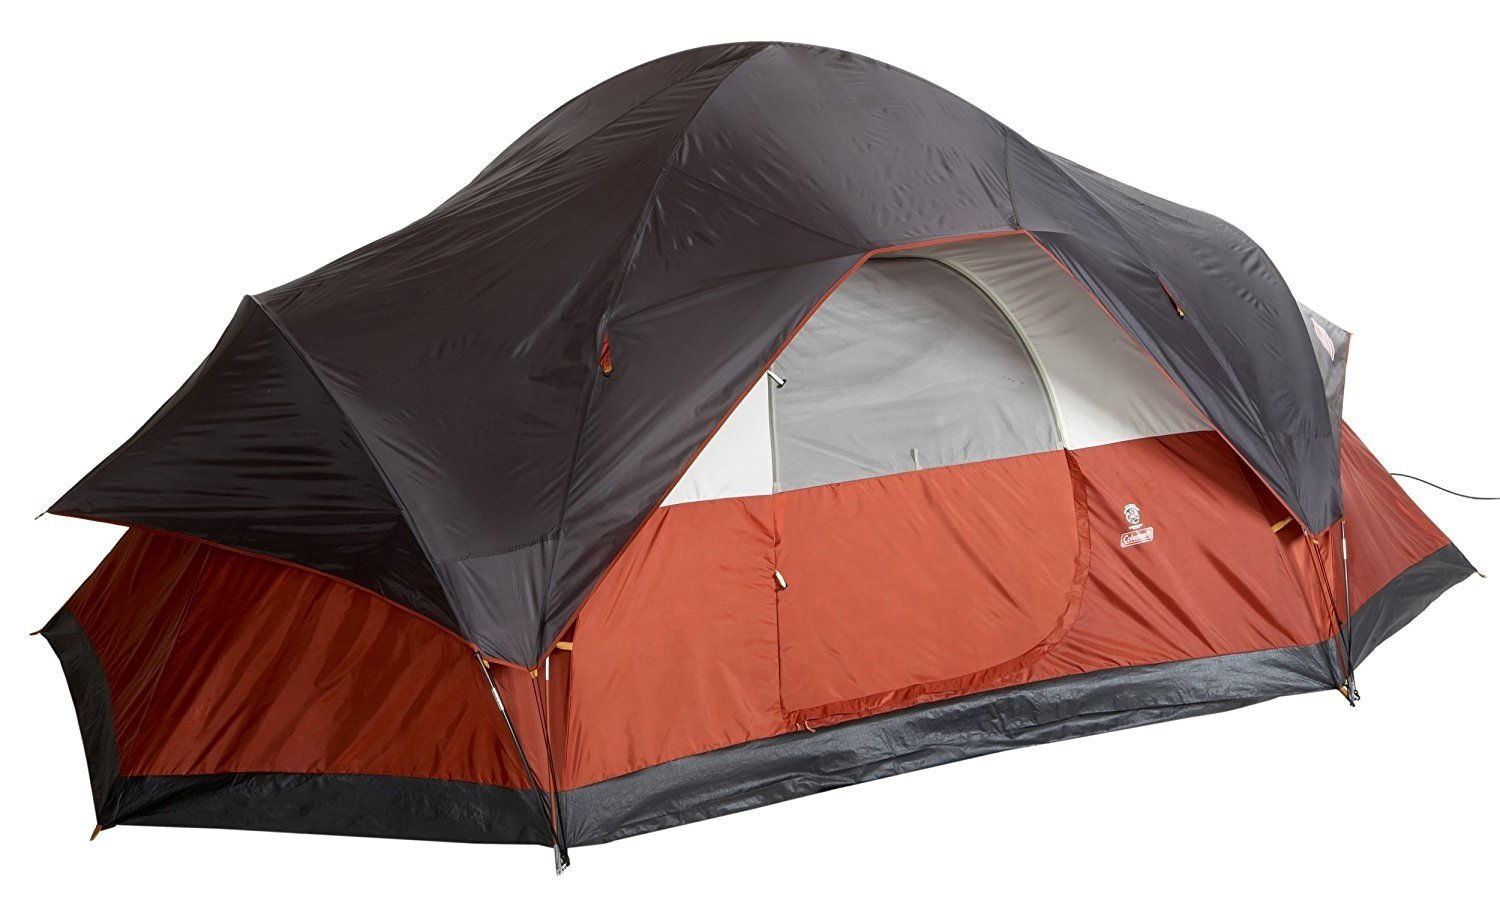 sc 1 st  Outdoor Adventure View & Coleman Red Canyon 8 Person Tent u2013 Review u0026 Rating